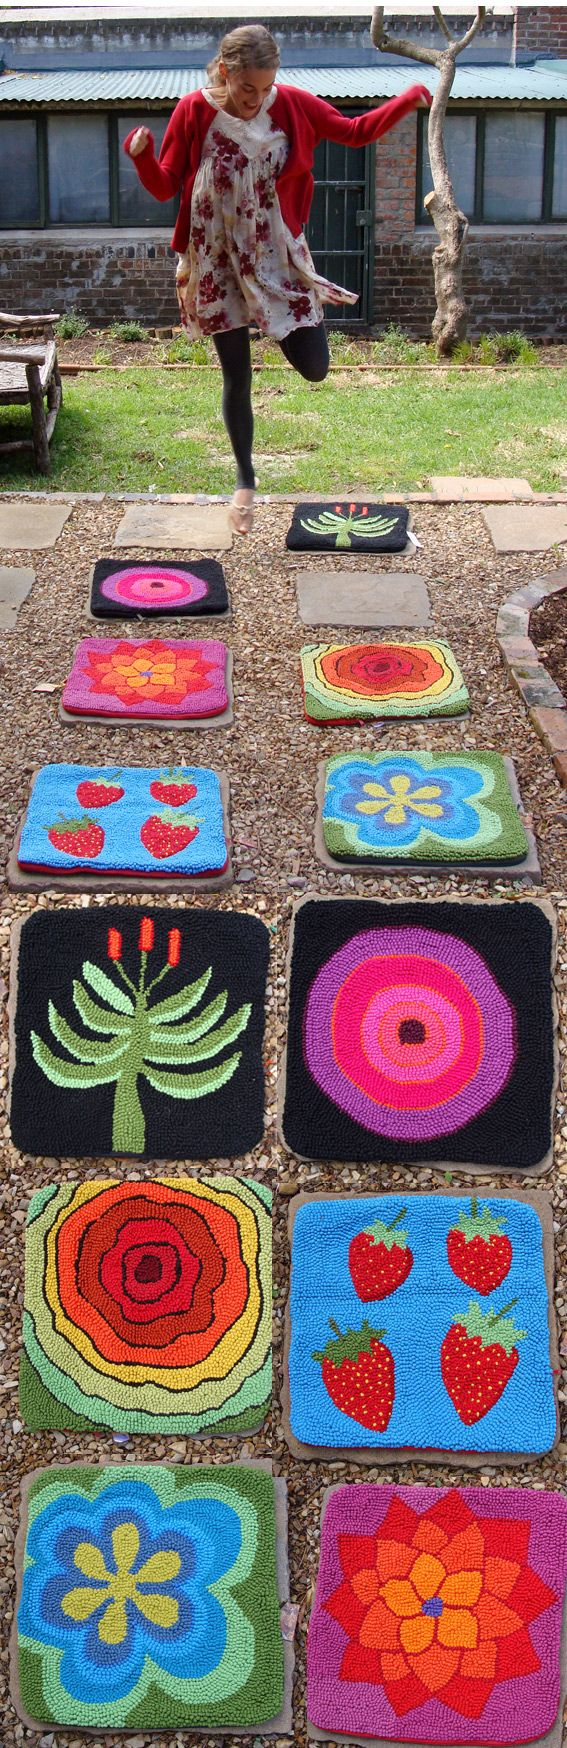 best mums images on pinterest punch needle rag rugs and rug